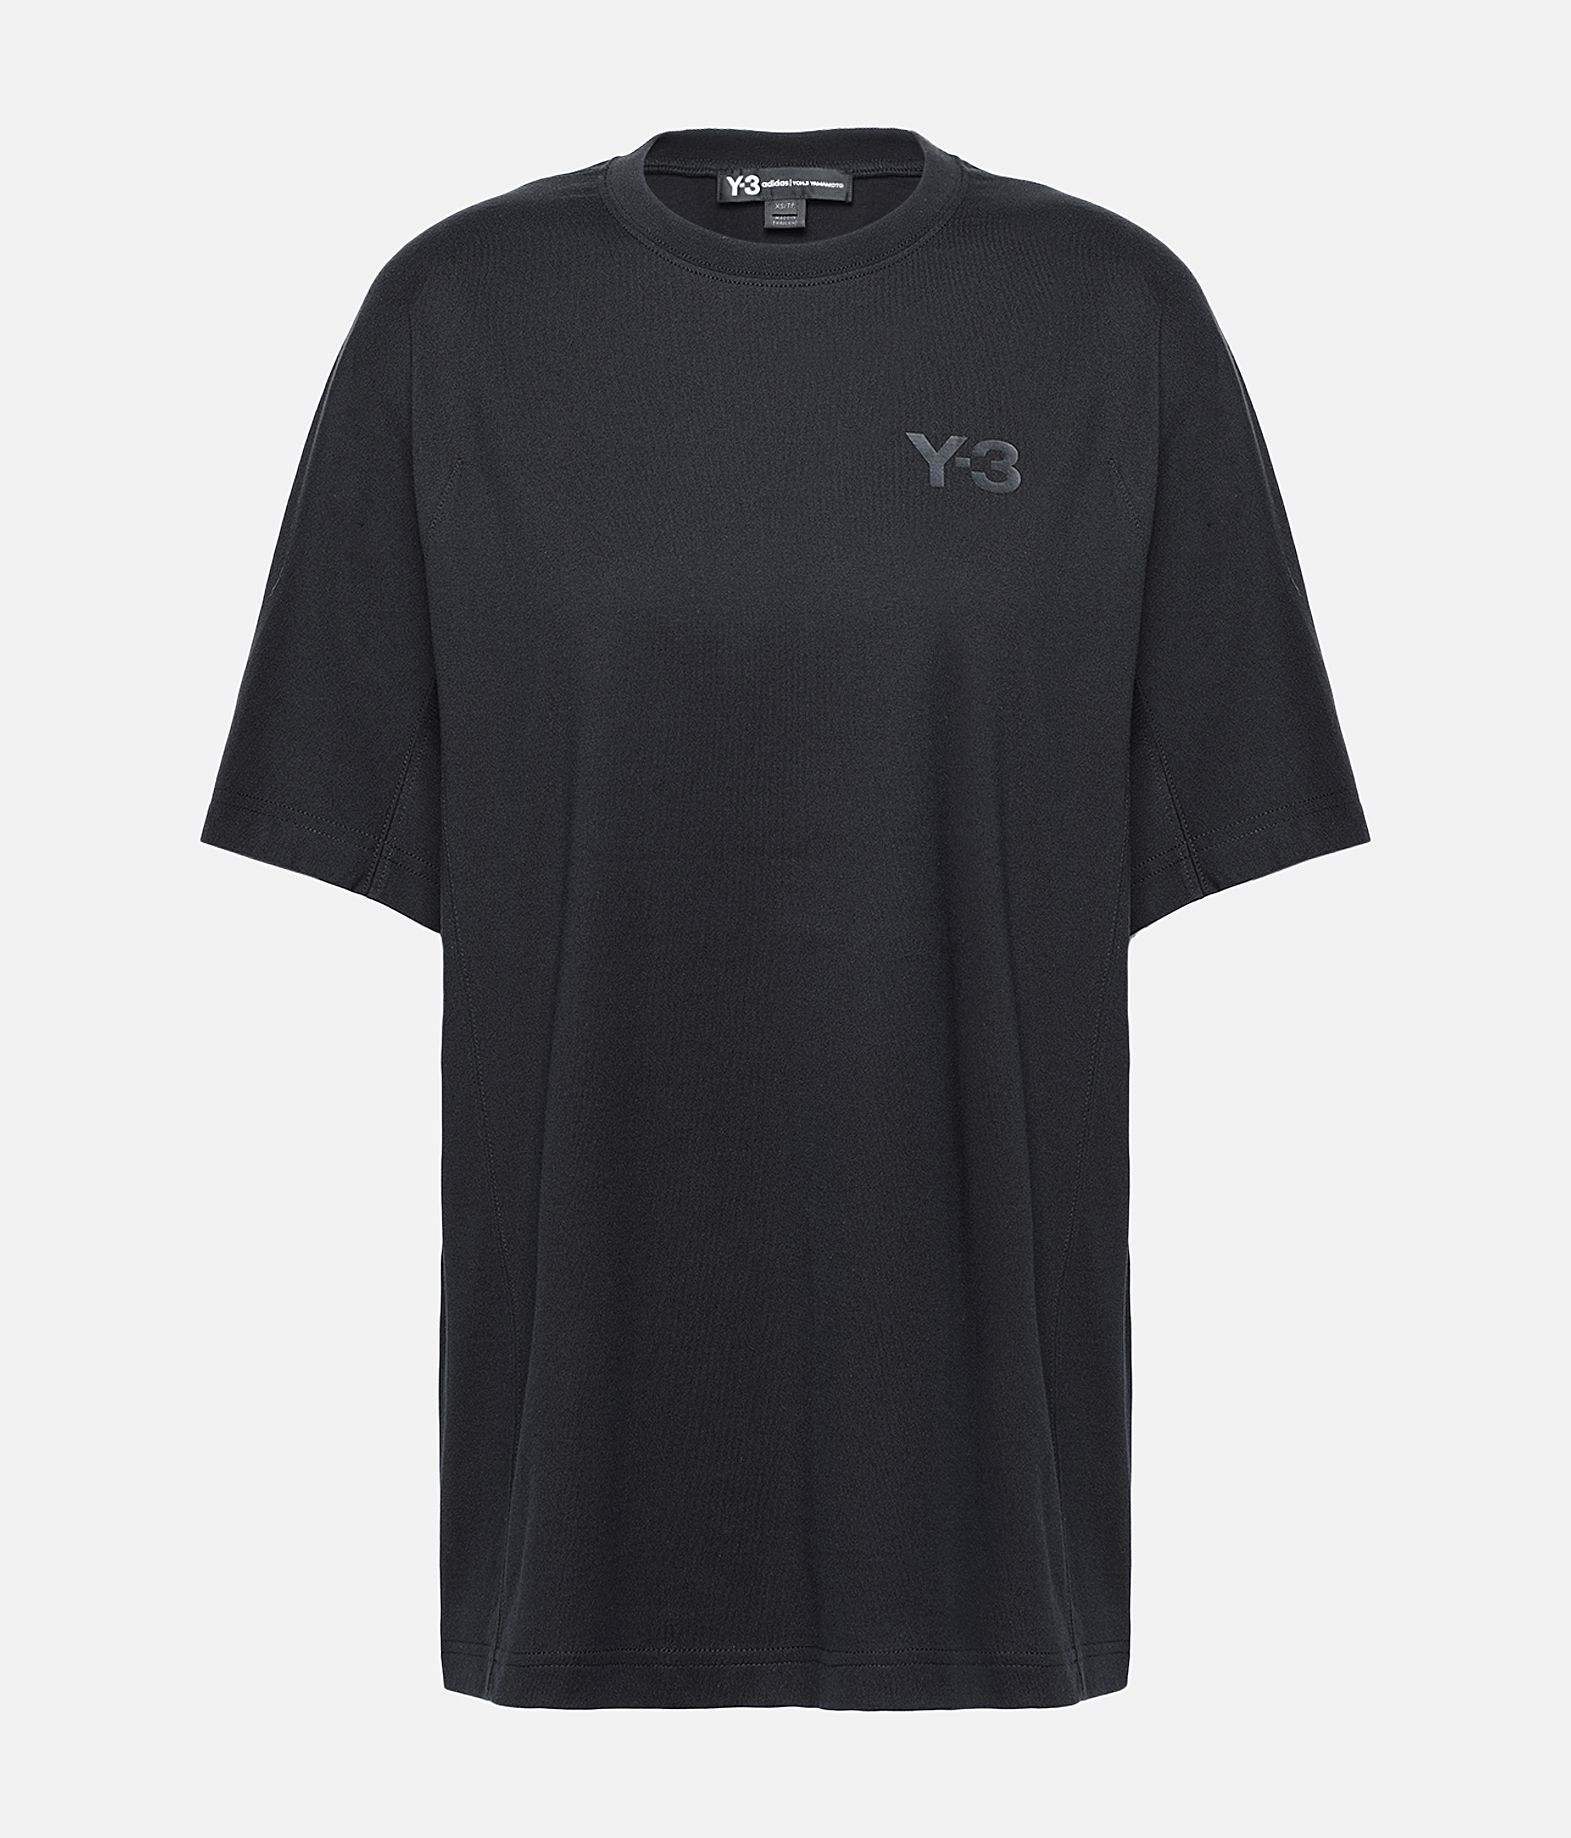 Y-3 Y-3 Graphic Tee Short sleeve t-shirt Woman f